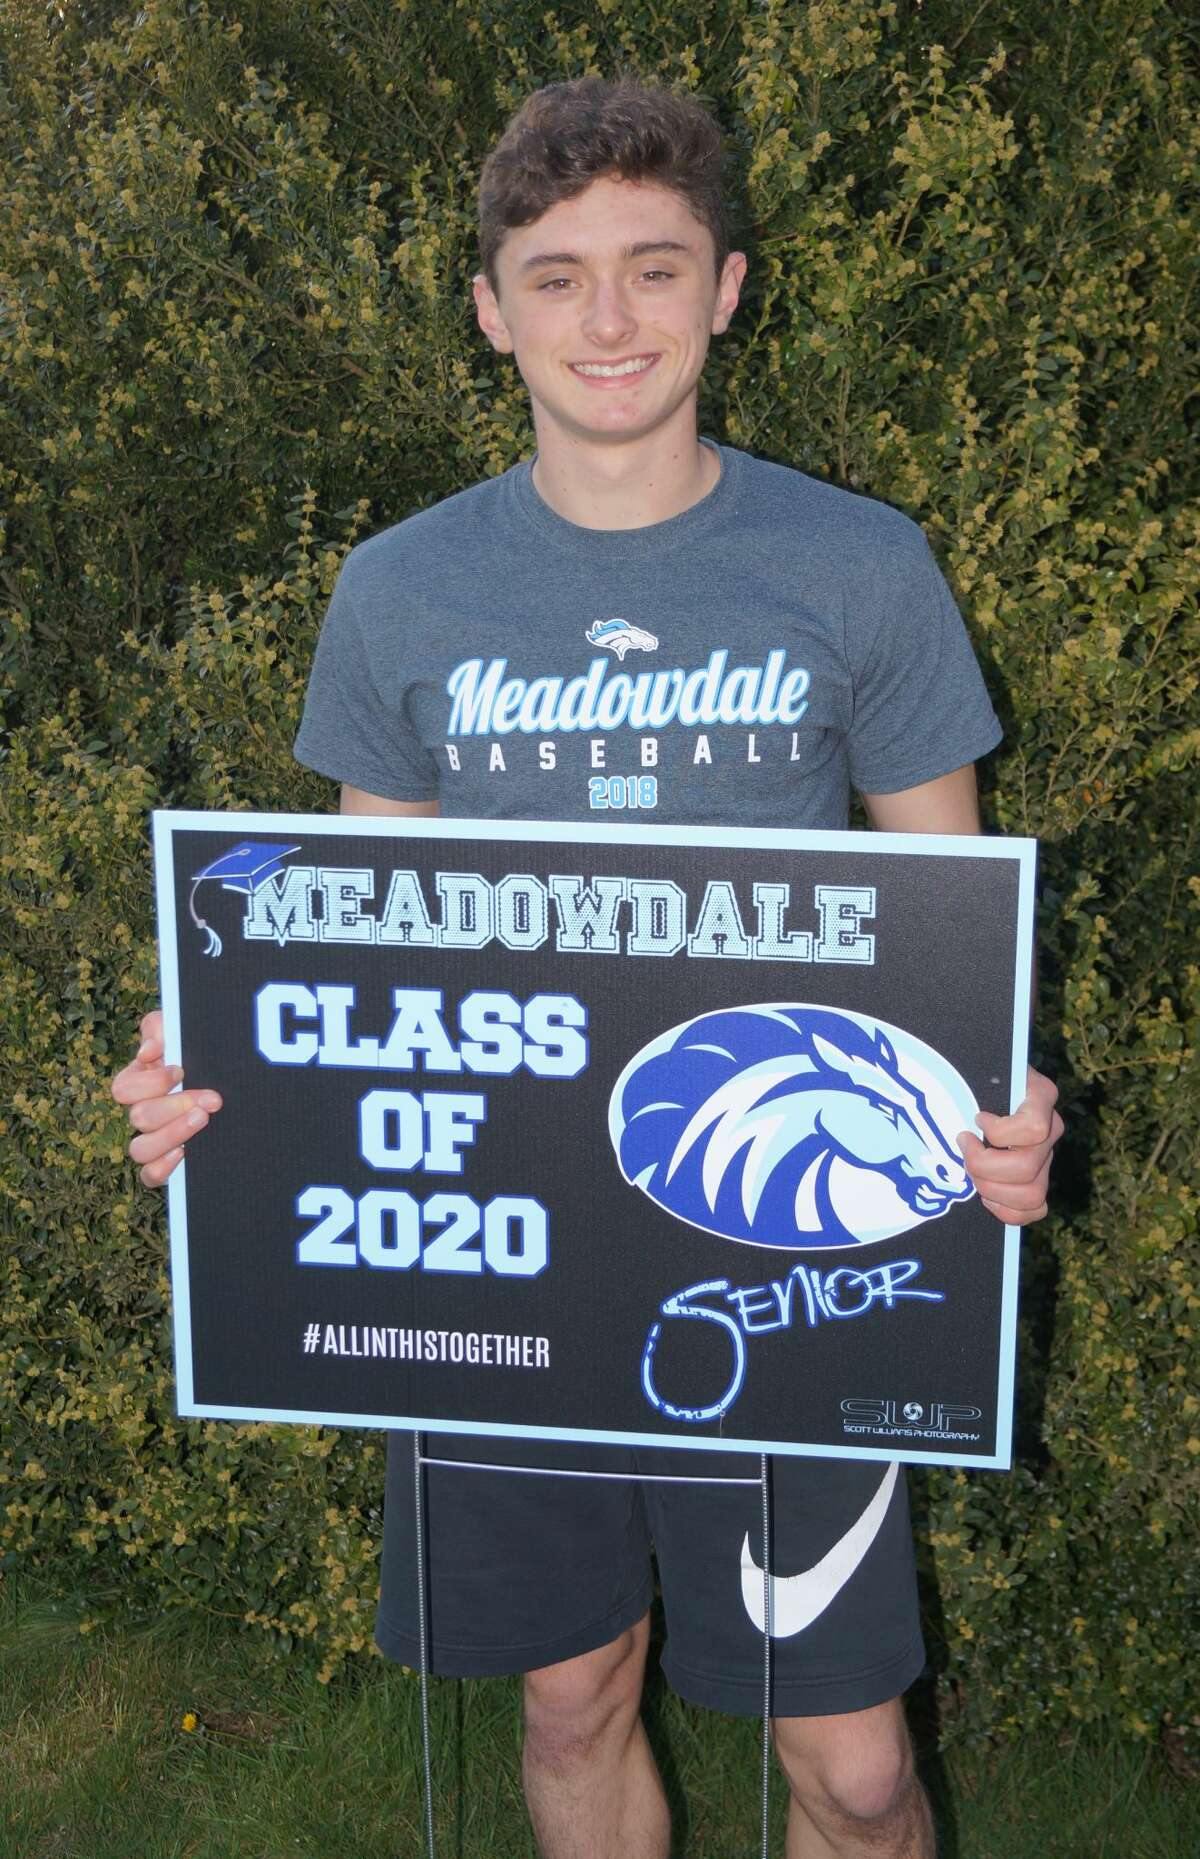 Meadowdale High School senior, Mason Vaughn poses with a yard sign celebrating the class of 2020. Photo courtesy of Amy Vaughn.